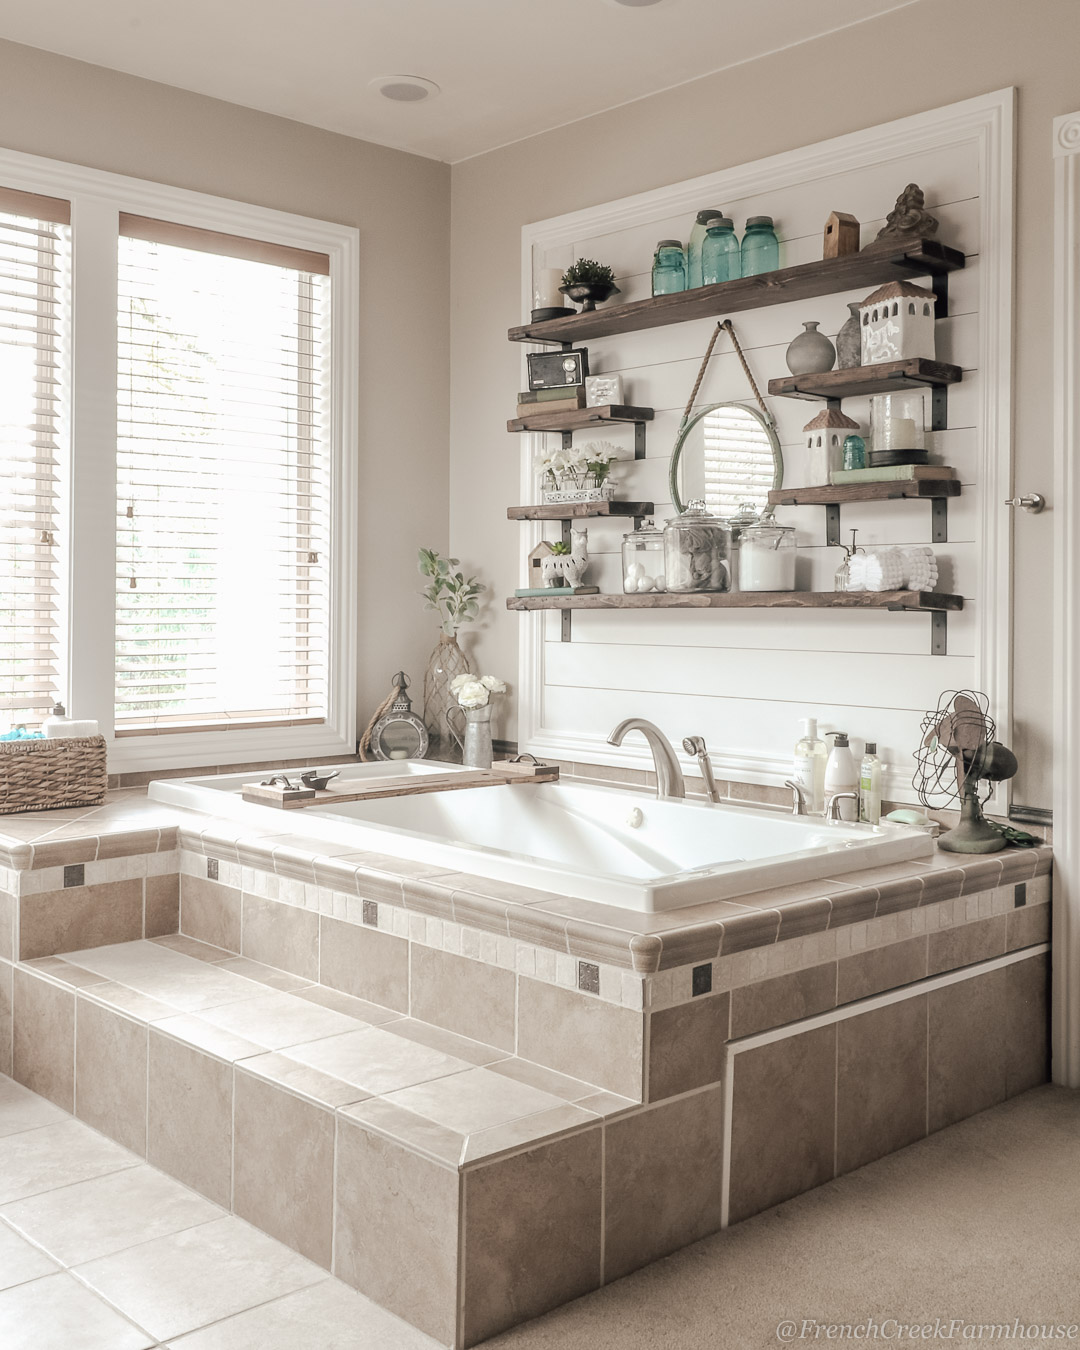 Our master bathroom is just one of the places we have added shiplap accent walls